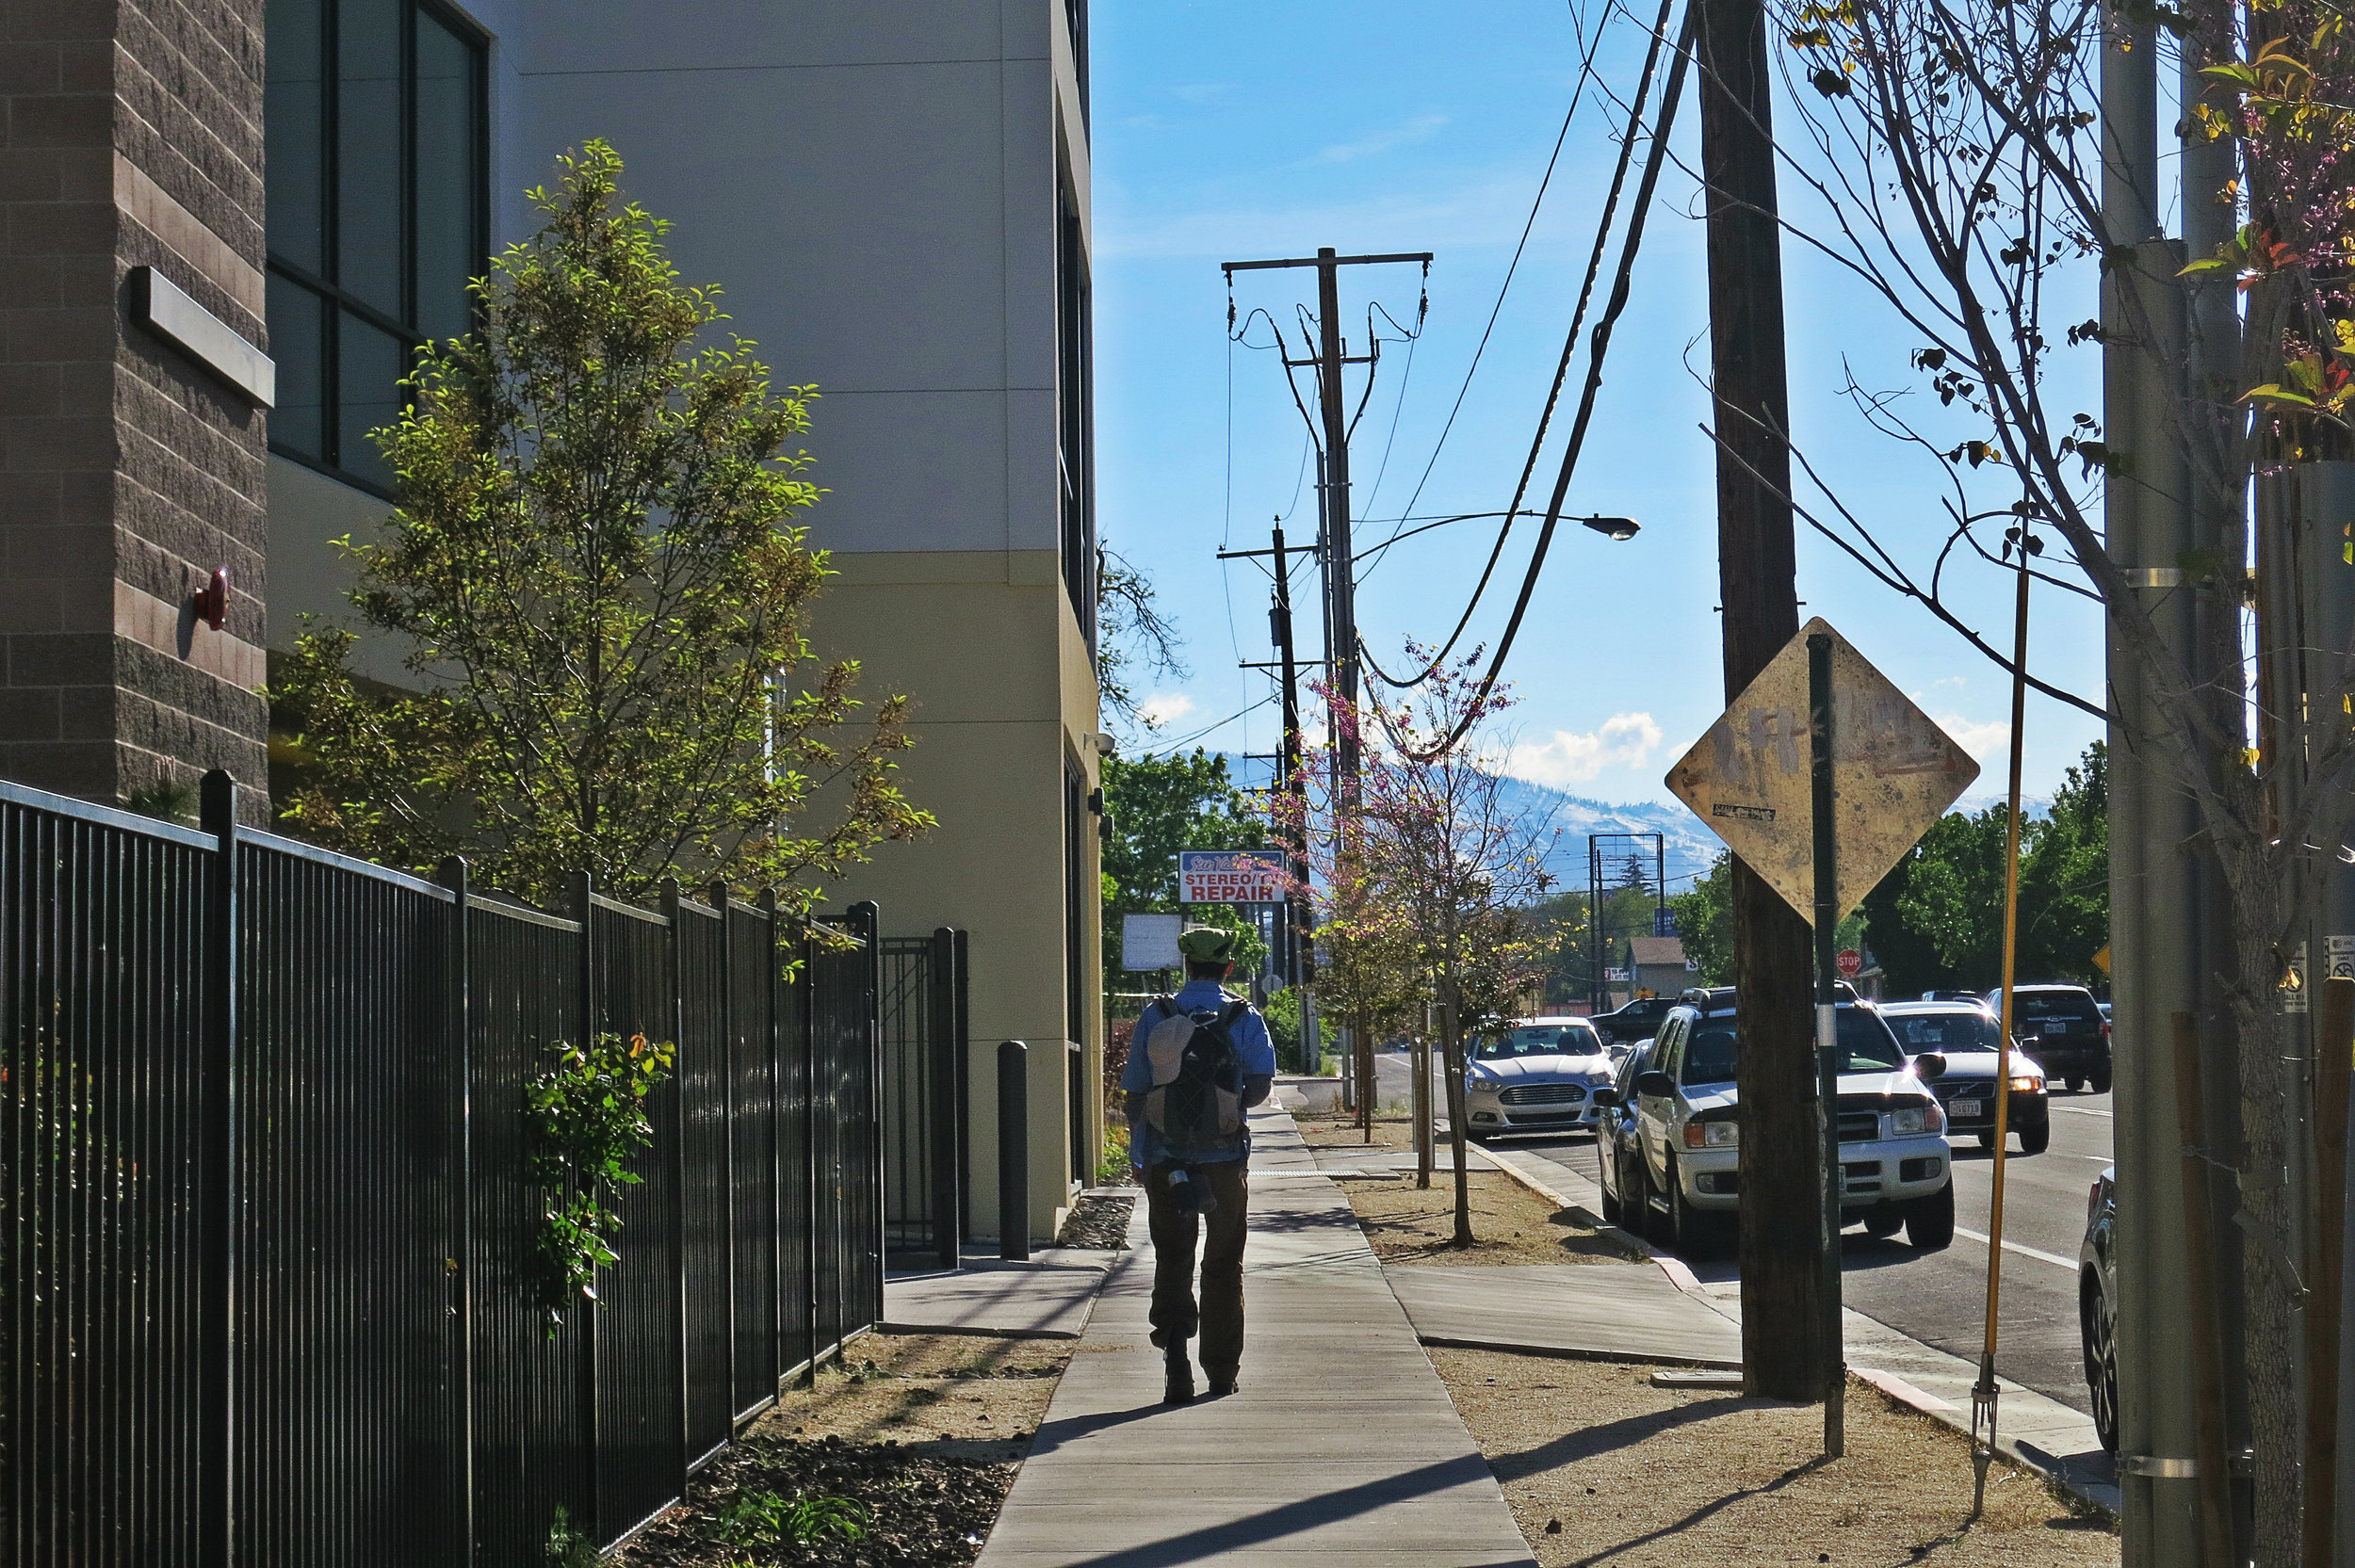 """Outside Hopes which sees steady traffic of pedestrians. """"We also have rising rents,"""" Diaz says of current conditions in Reno. """"So that also displaces people so they become homeless, or live with others in the same small apartment. That also draws people to be tempted and exposed to drug addiction and prostitution."""""""